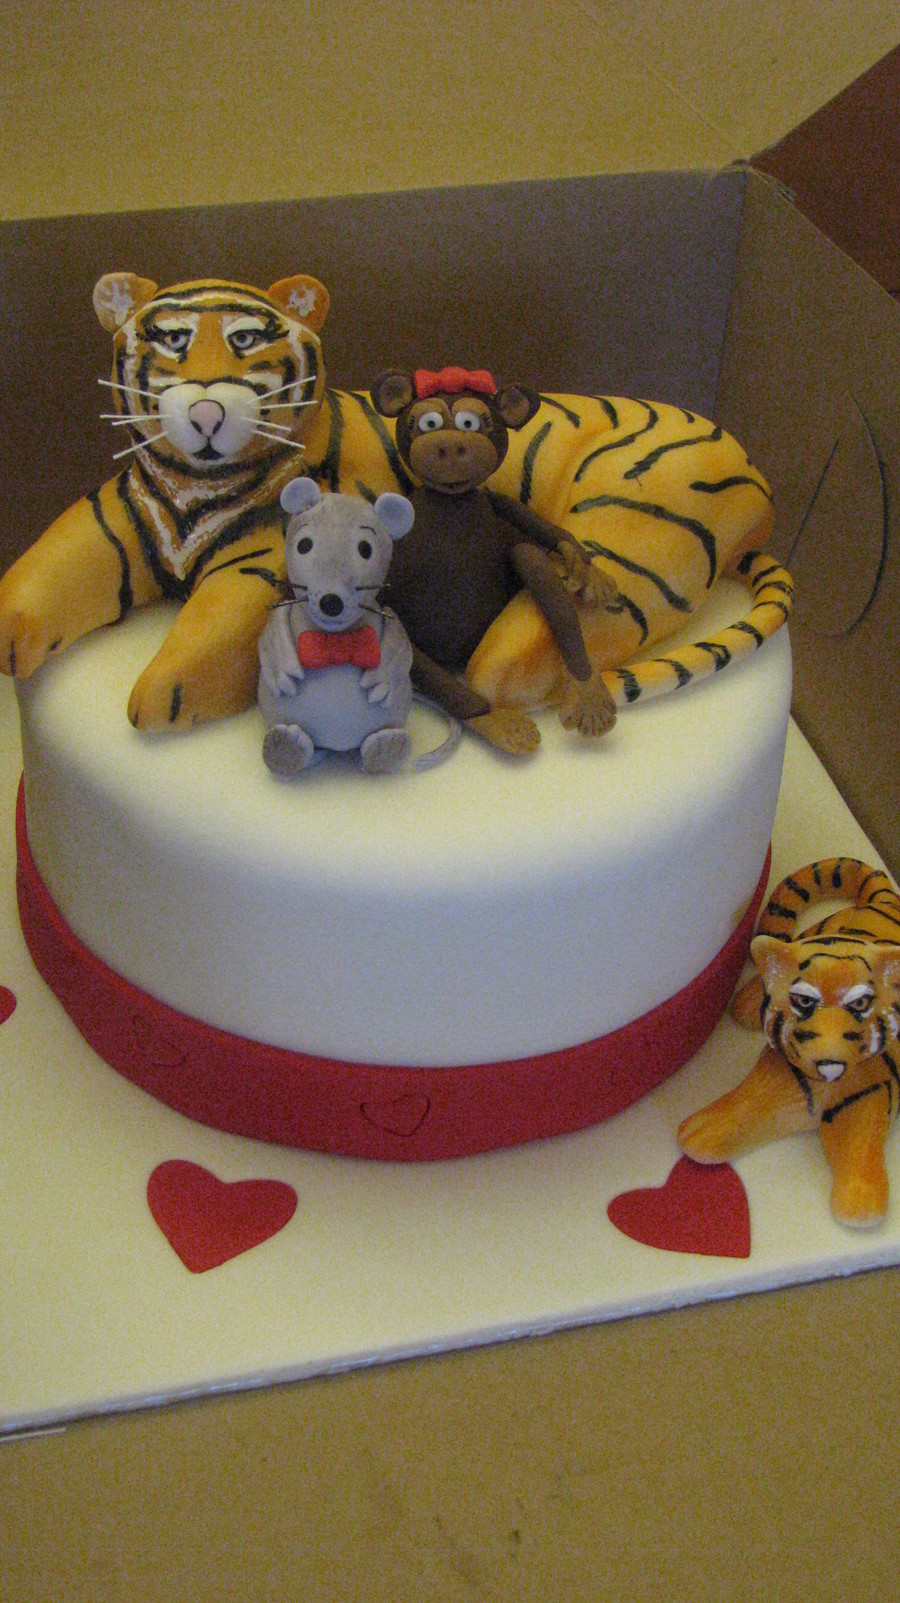 Remarkable Tiger Lover Birthday Cake Cakecentral Com Personalised Birthday Cards Paralily Jamesorg